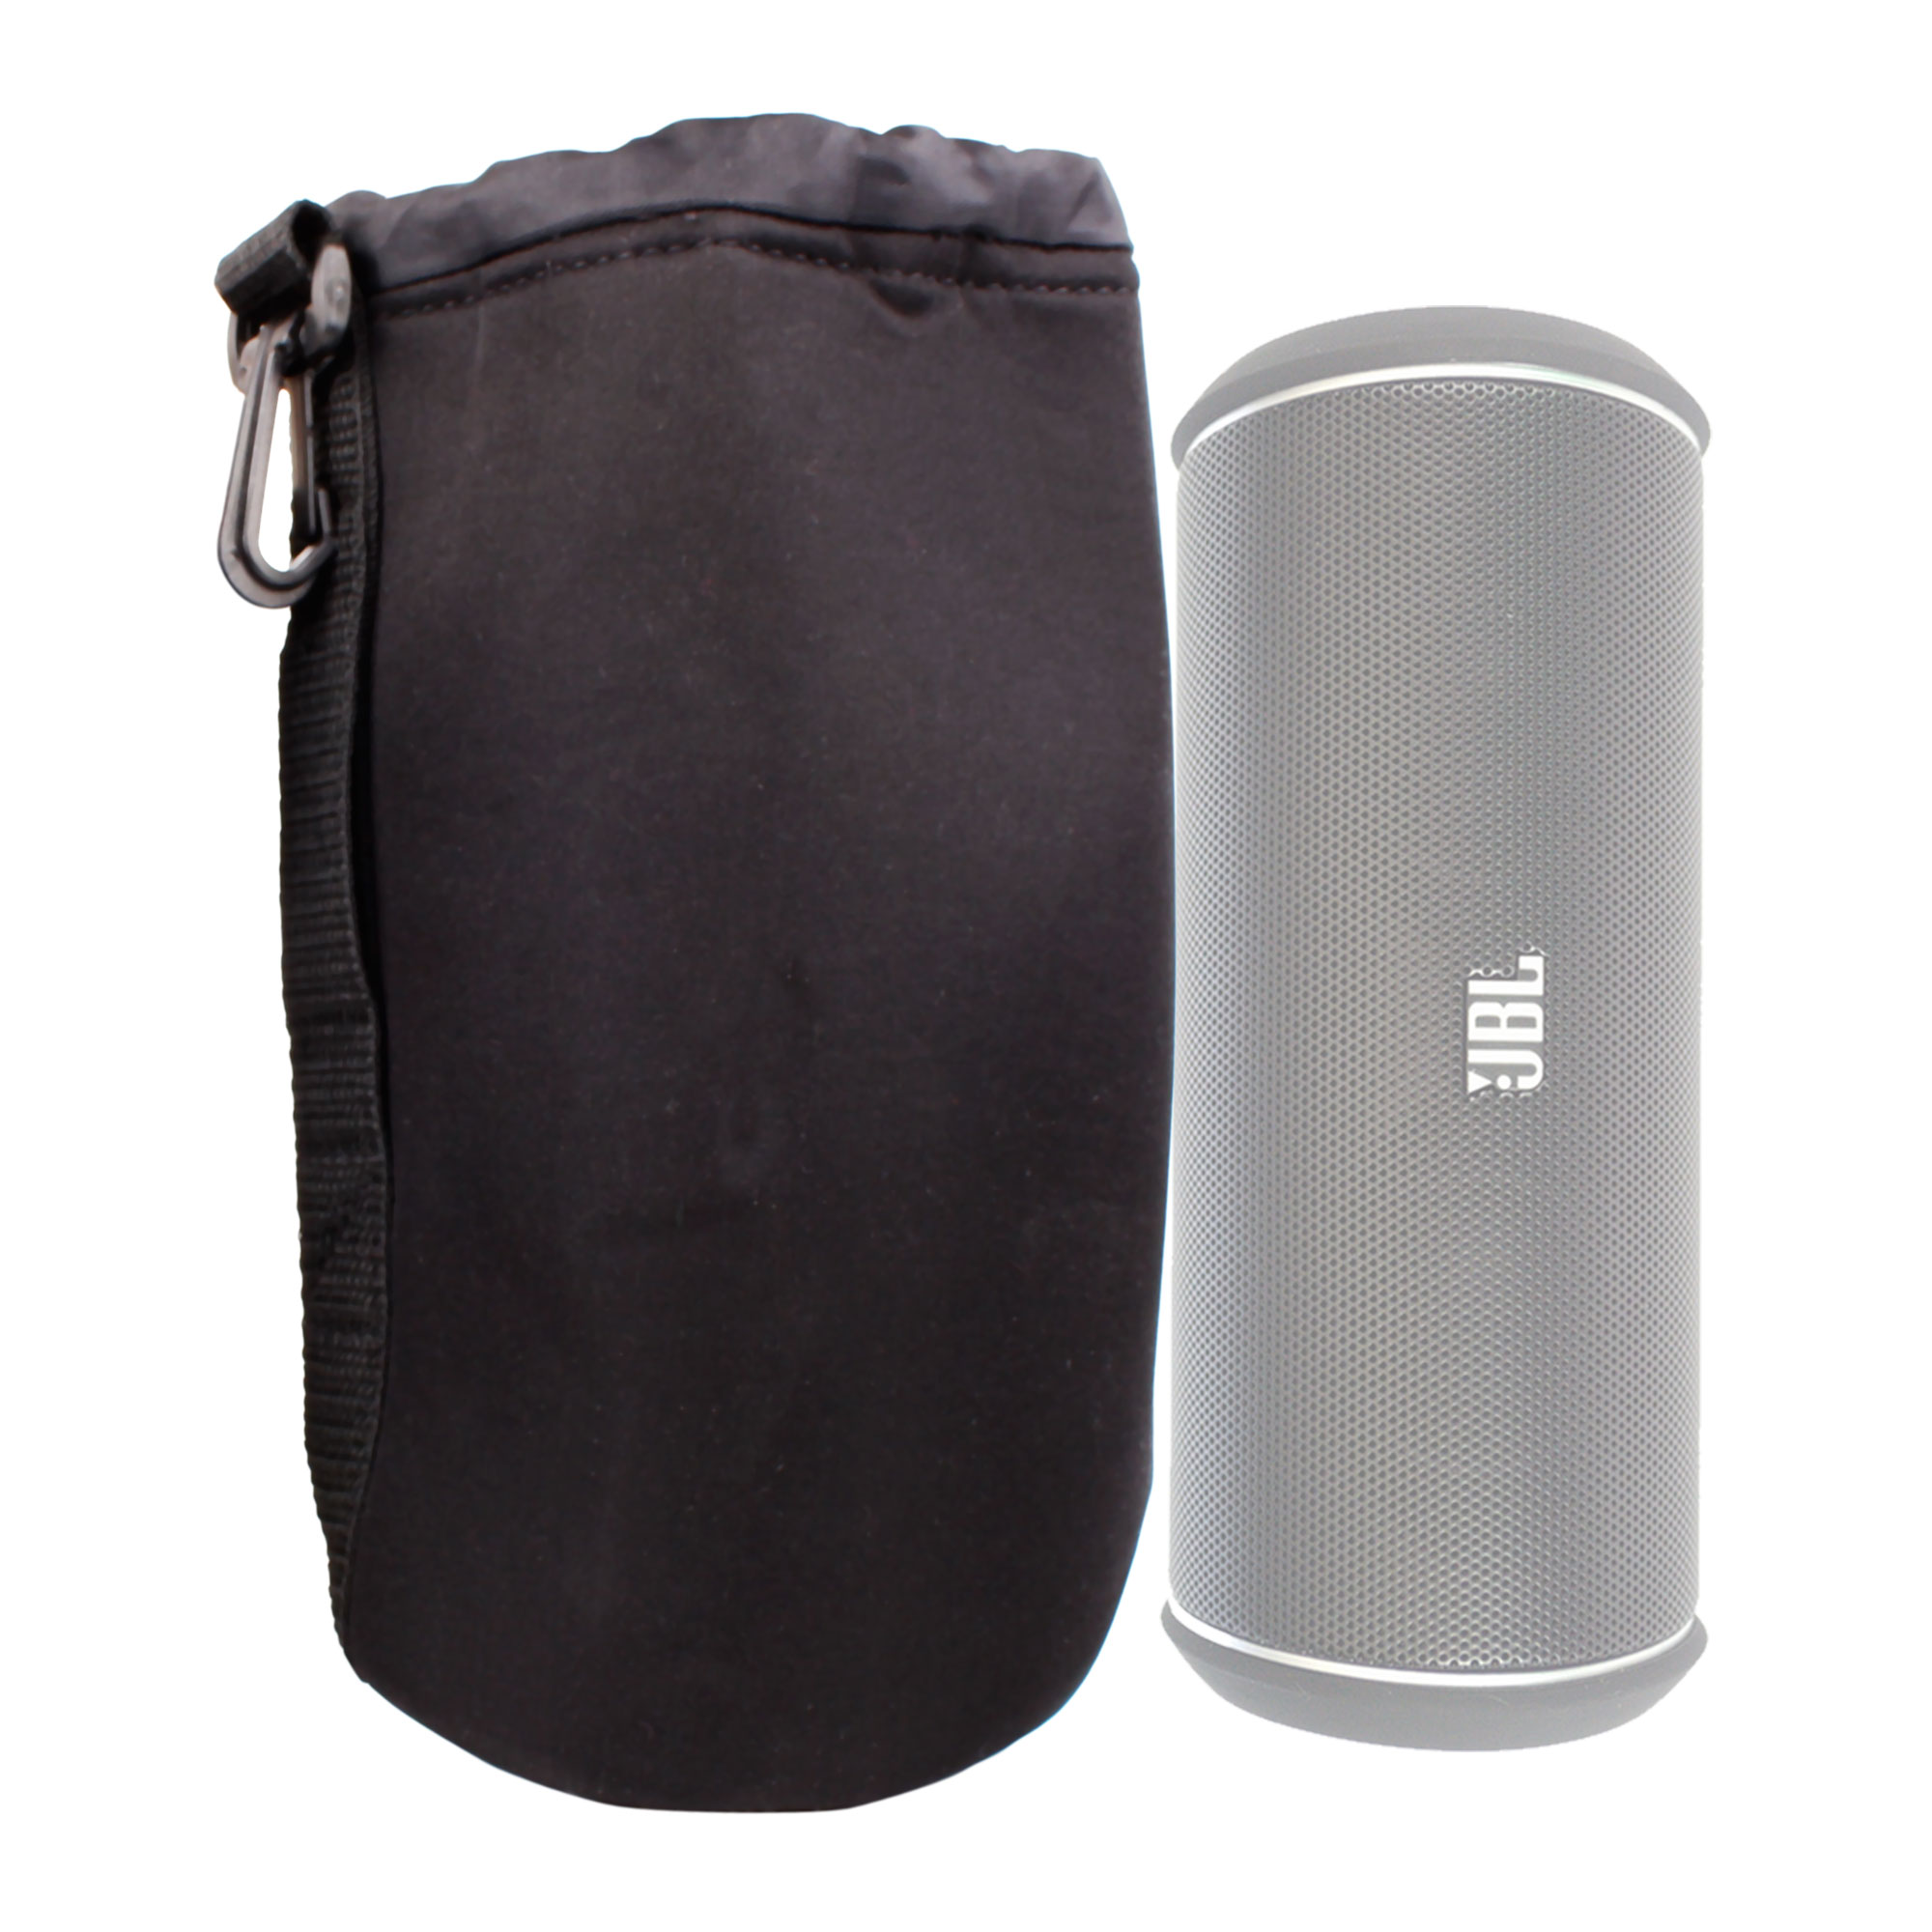 Enceinte sans fil jbl black friday l enceinte sans fil for Housse jbl pulse 3